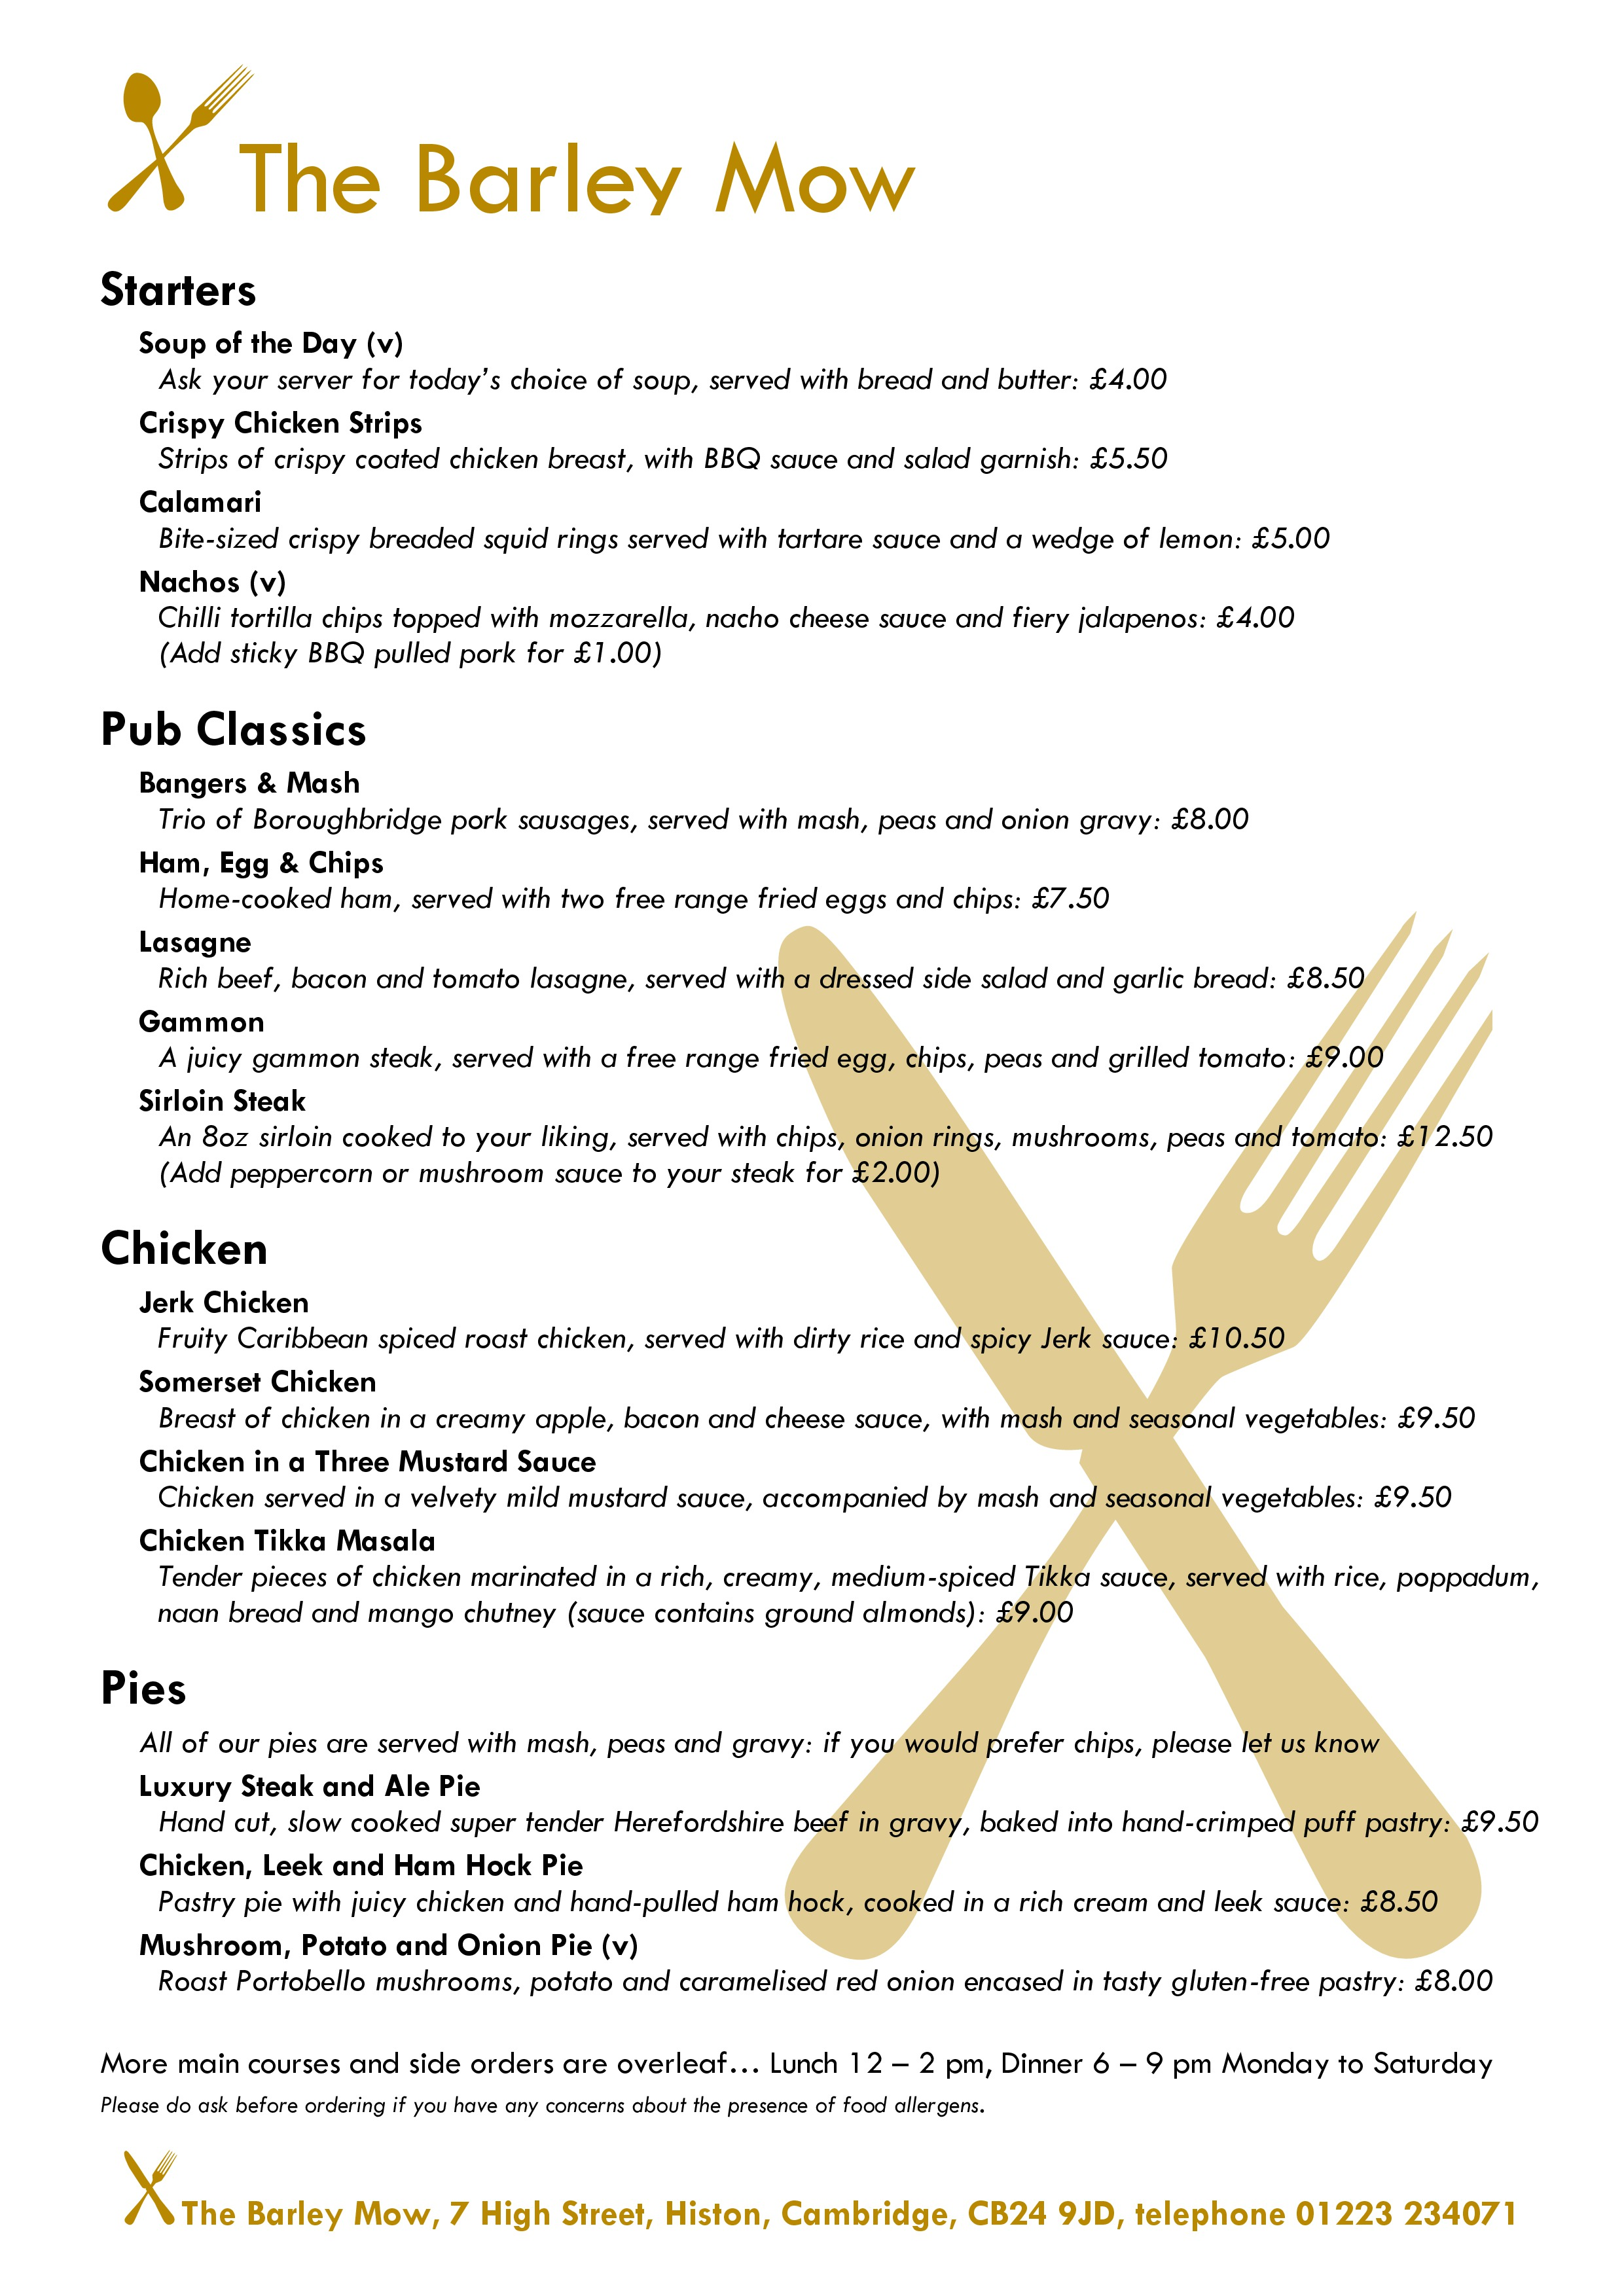 barley-mow-english-menu-1-nov-16-page-0